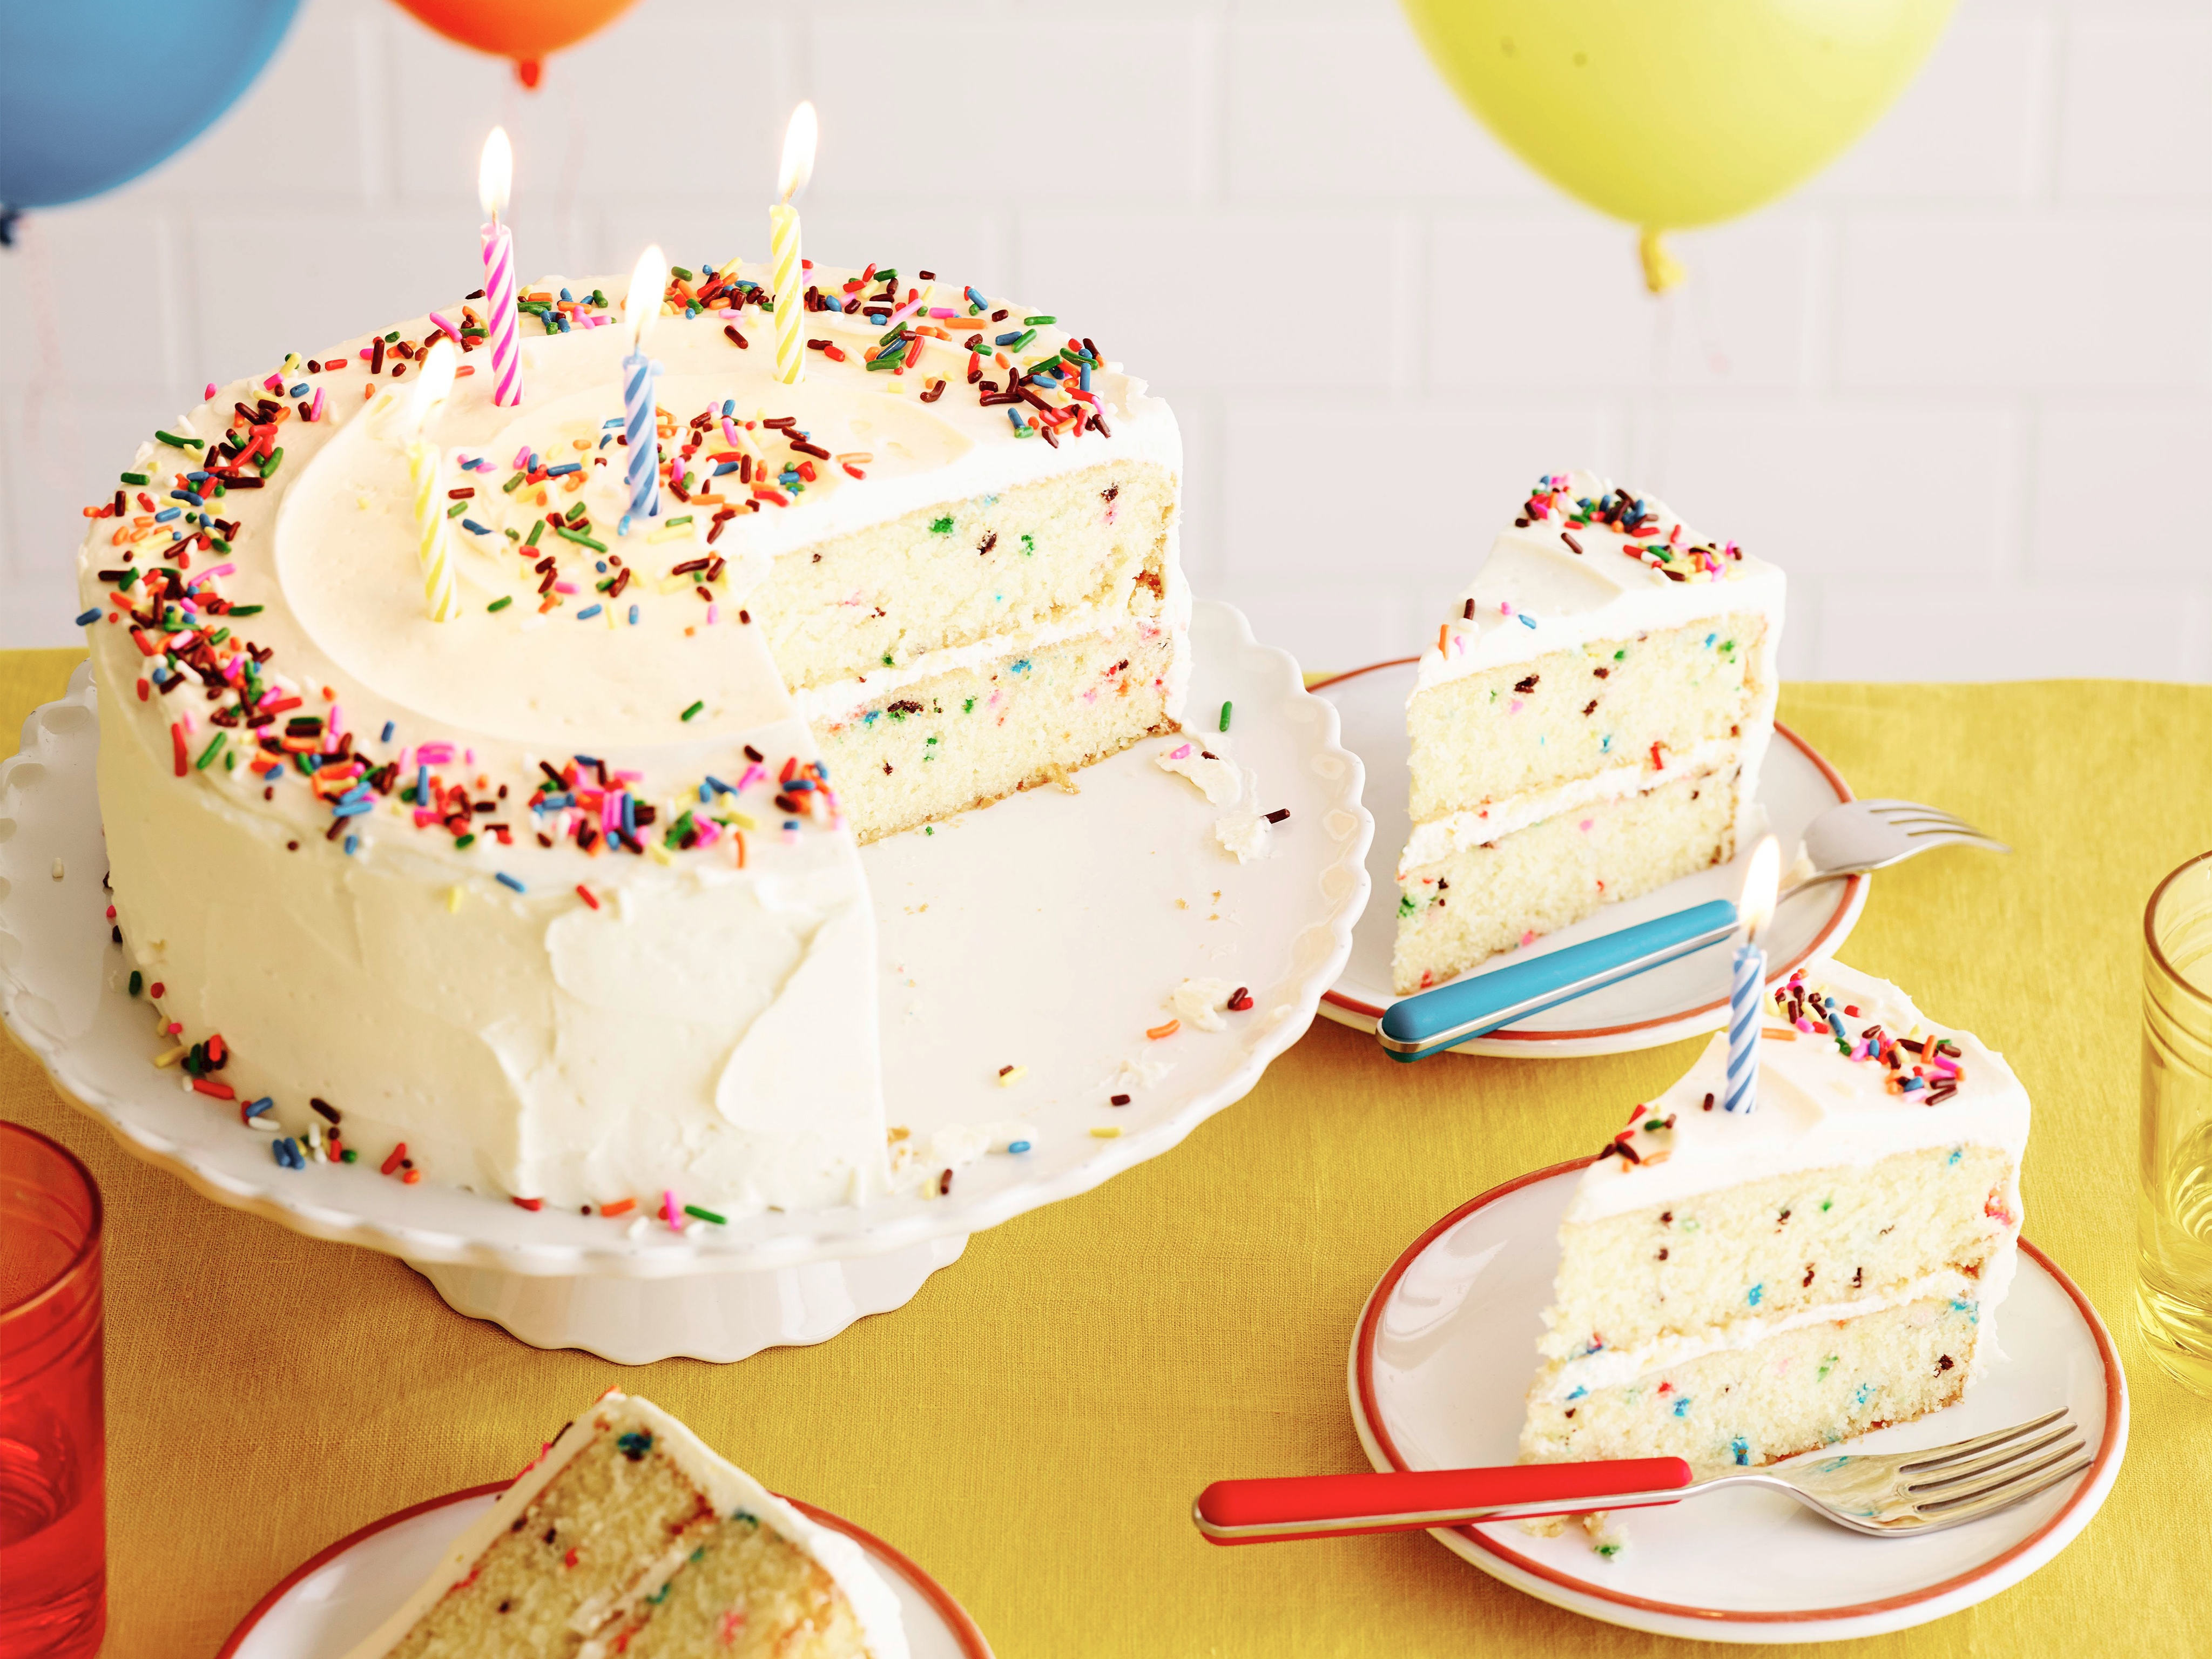 birthday cake wallpaper images ; af4bfdb91e7758932552713f7537f82a